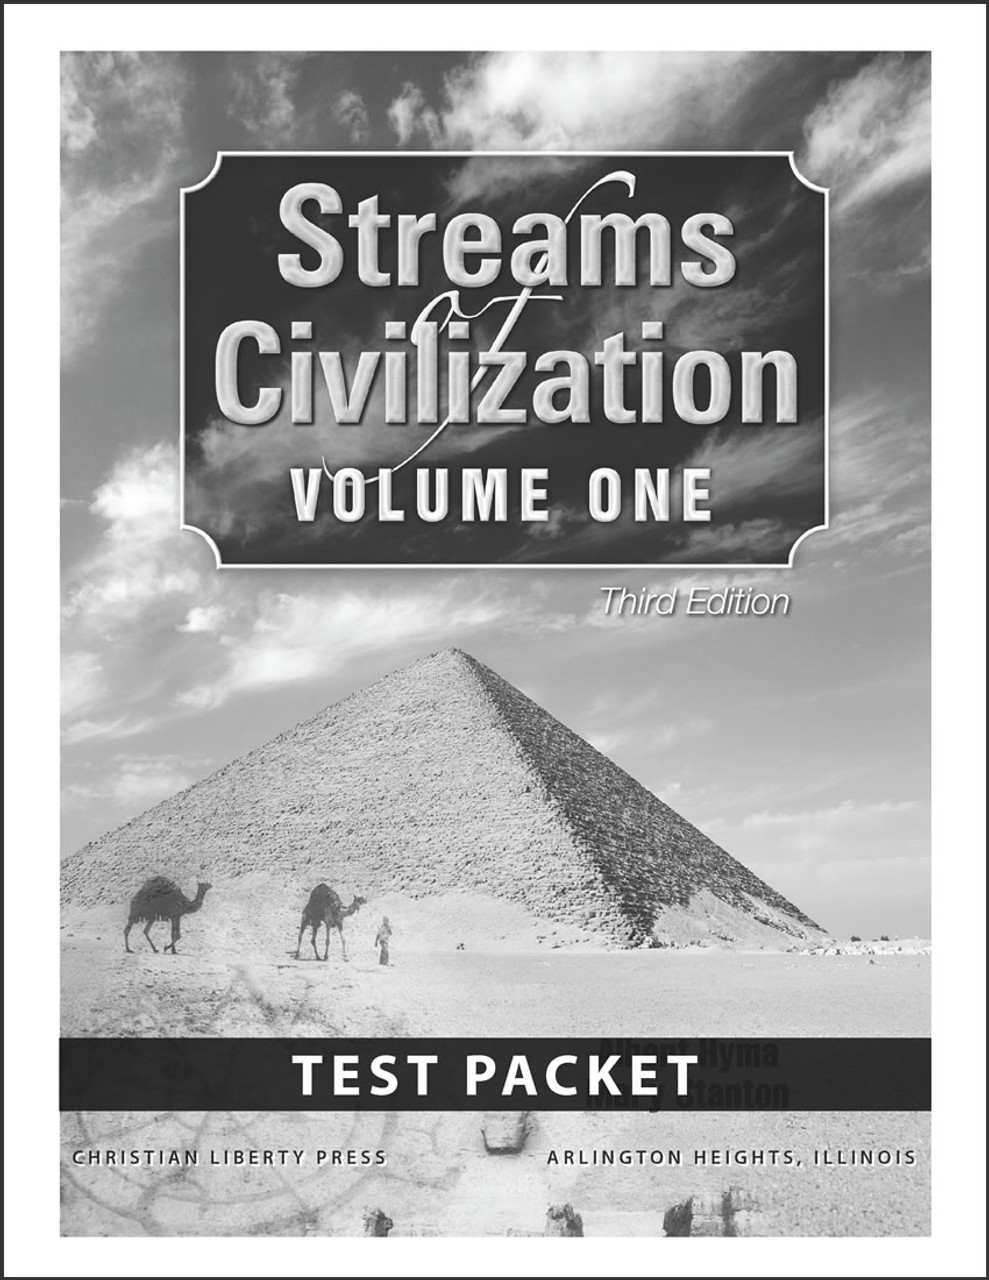 Streams of Civilization Volume One, 3rd edition - Test Packet